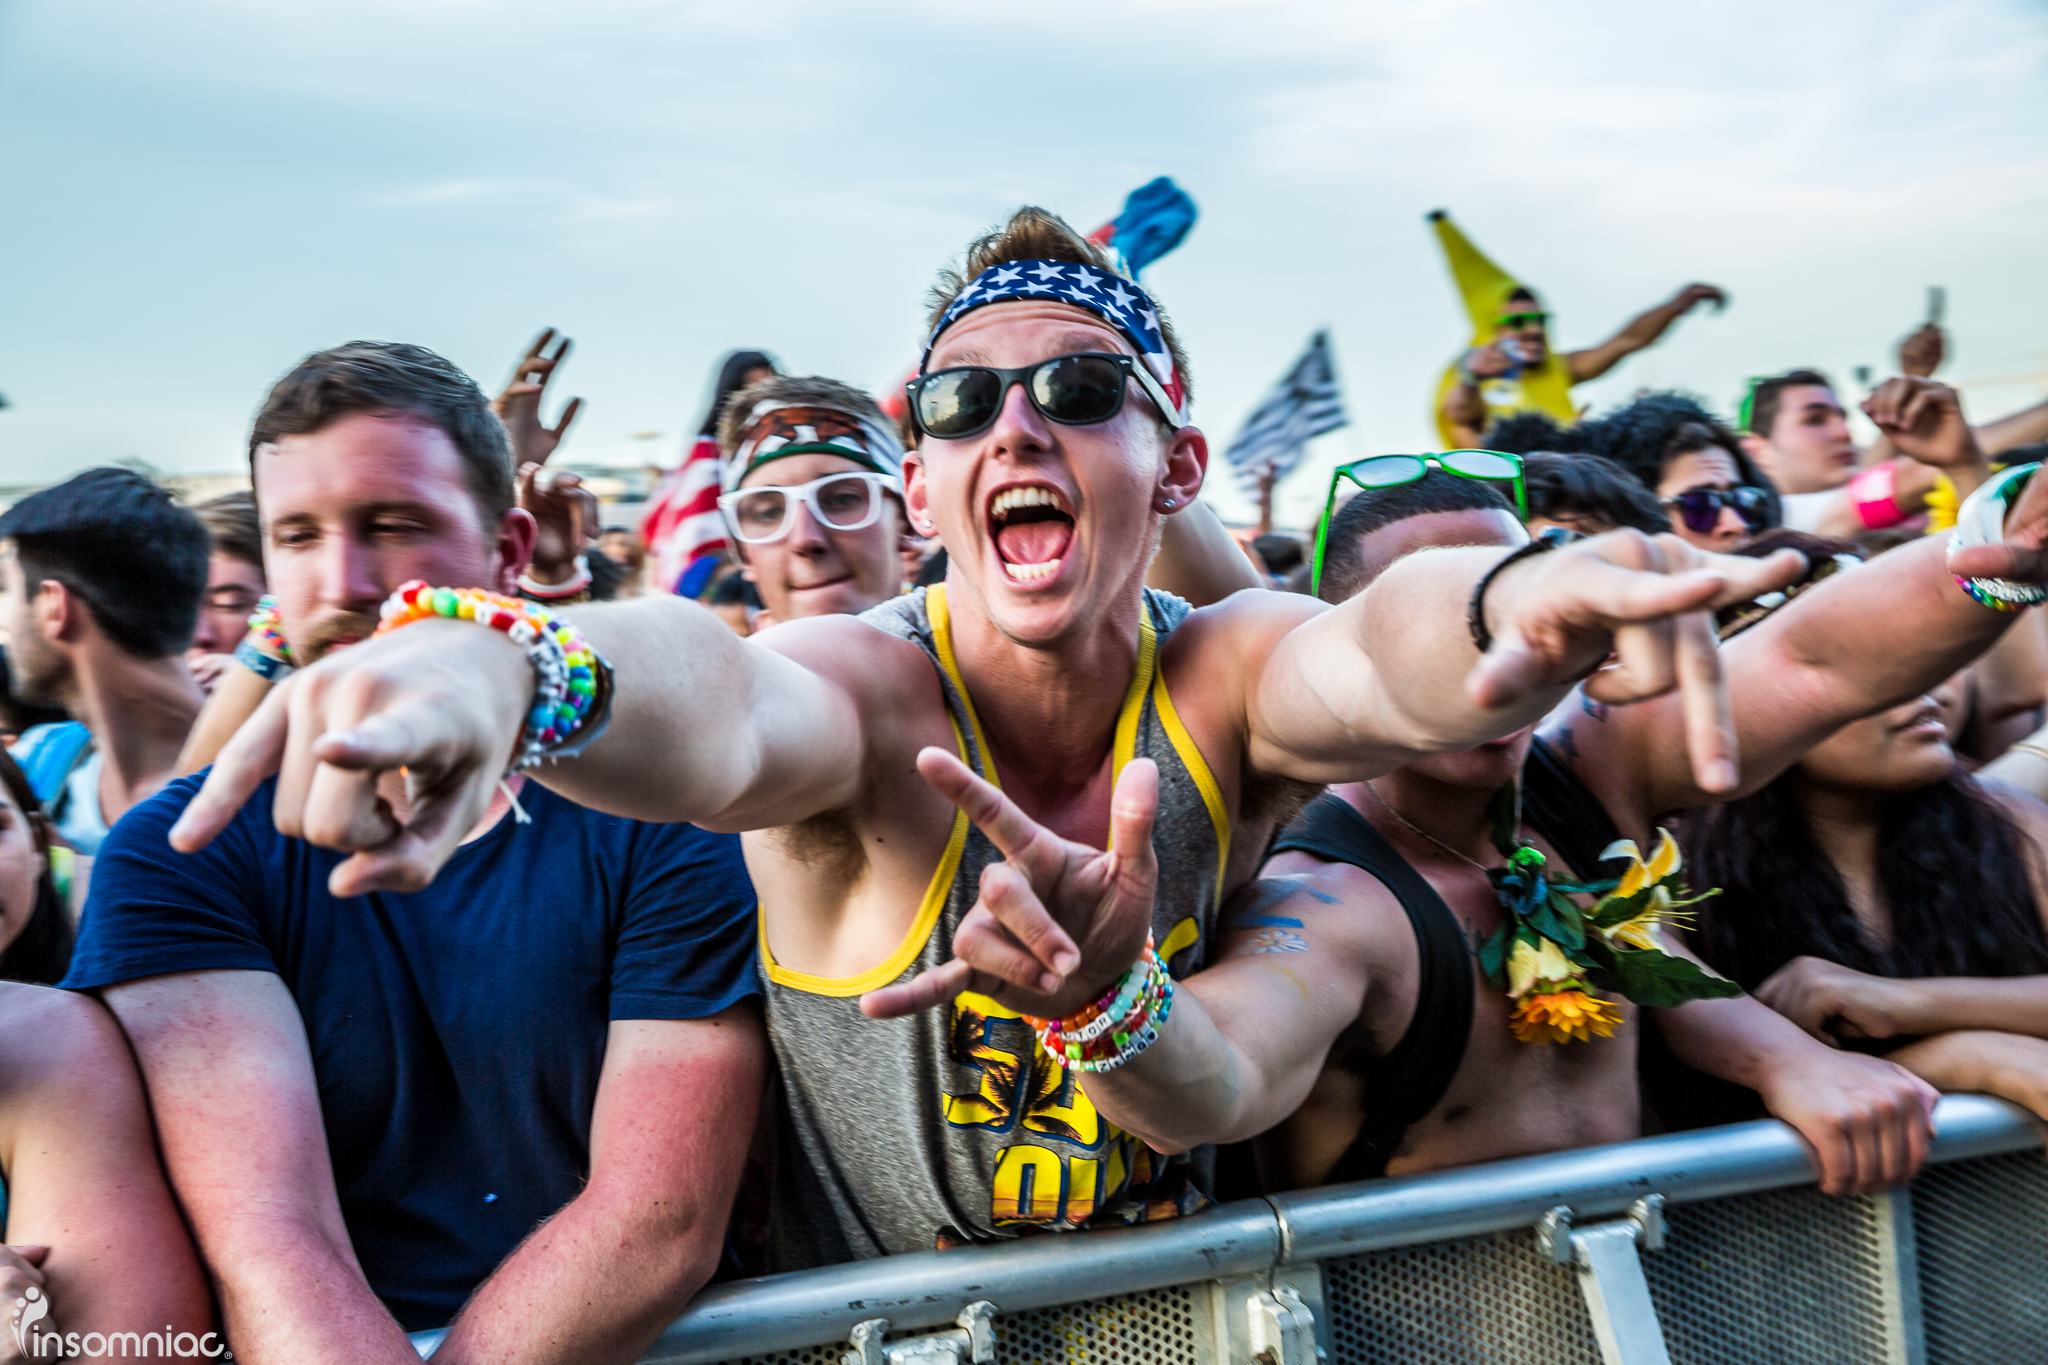 EDCNY_2015_iWally_aLIVECoverage-18.jpg